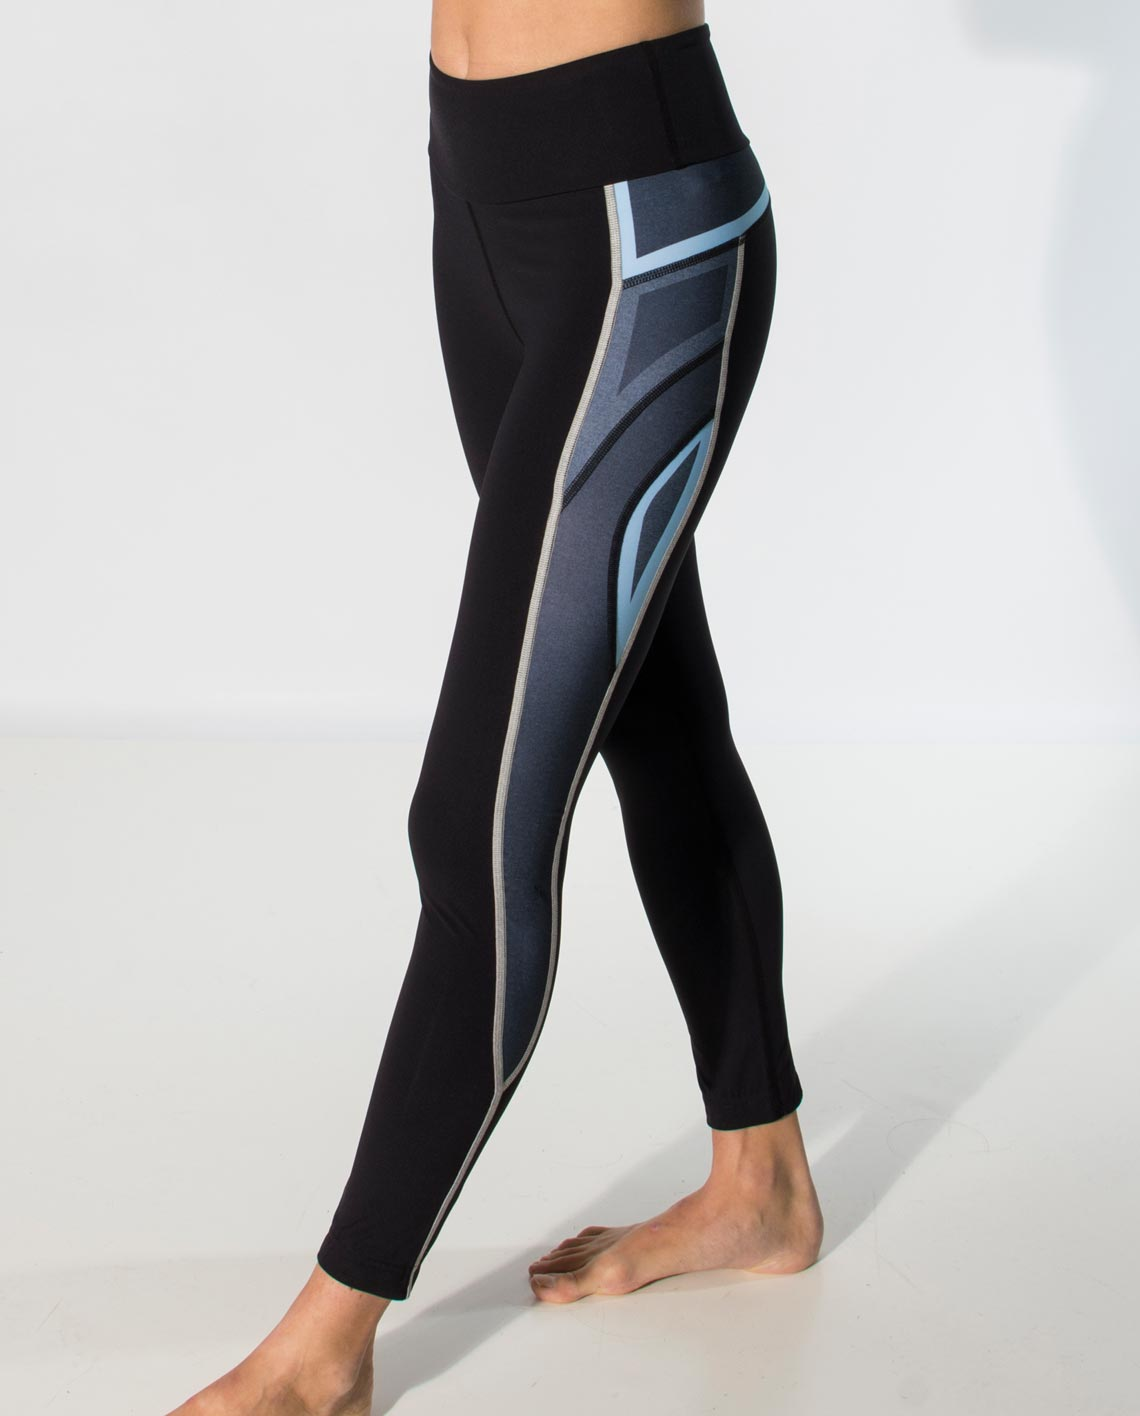 revele-womens-sport-compression-leggings